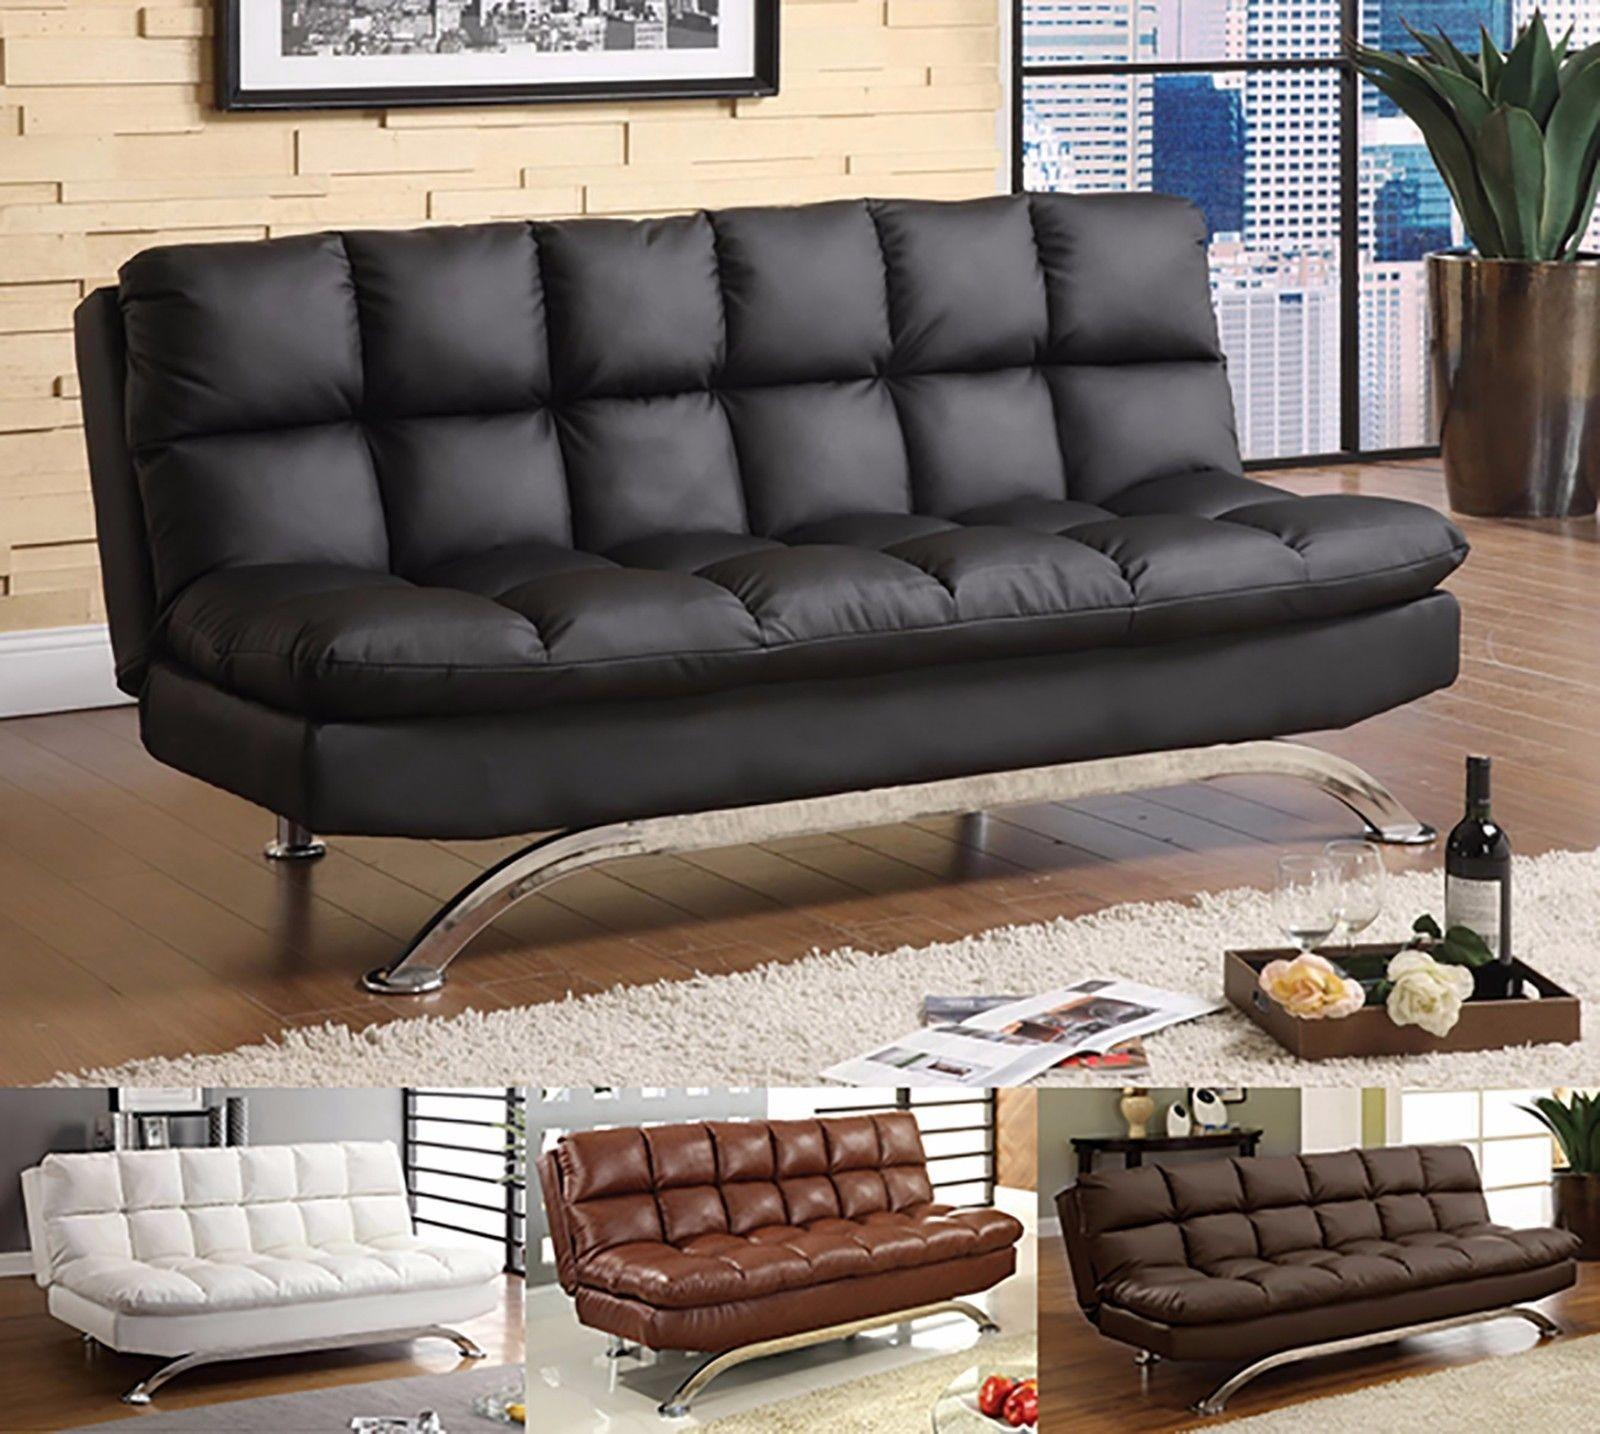 Modern Sleeper Sofa Bed Folding Couch Leather Futon